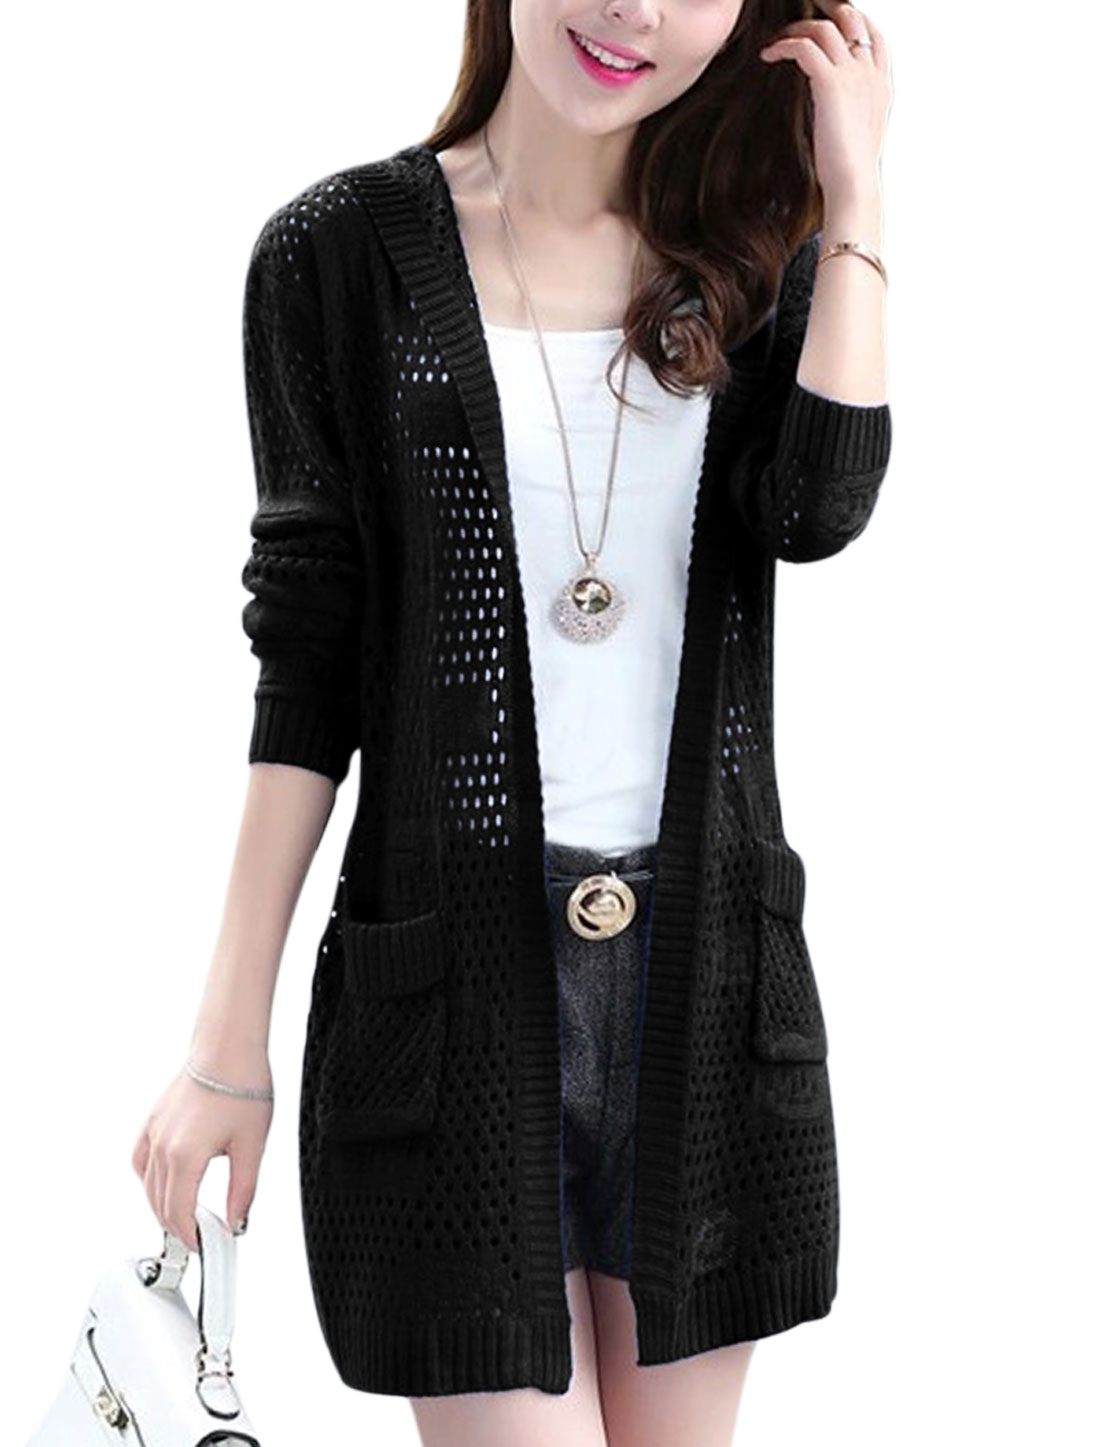 Women Front Opening Hollow Out Tab Back Hooded Long Cardigan Black XS